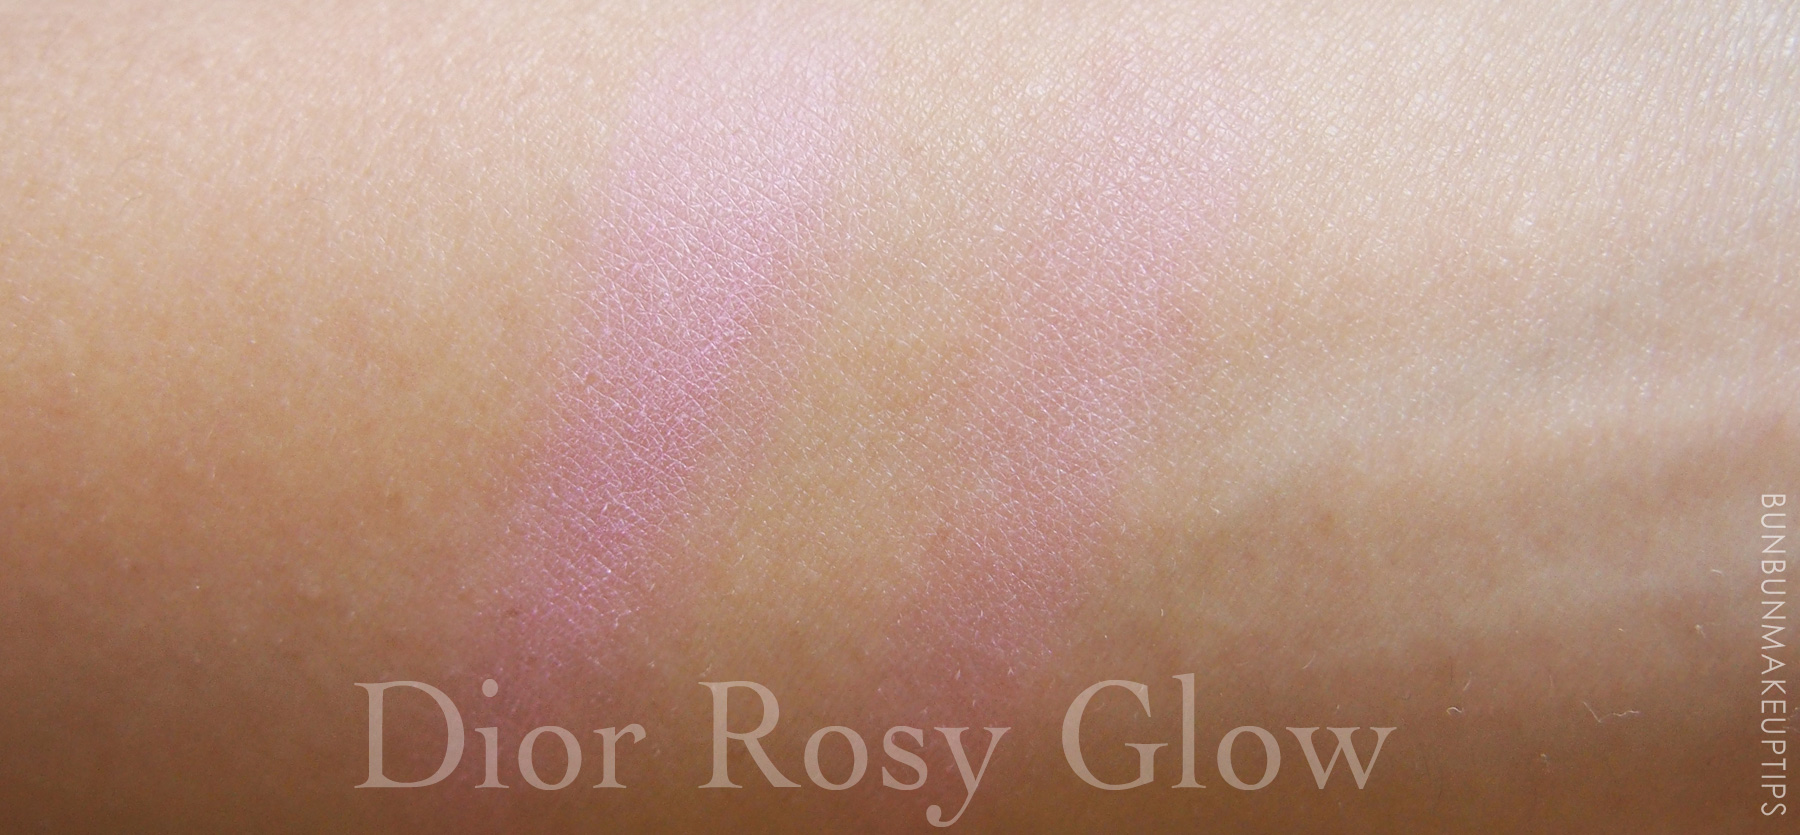 Dior-Rosy-Glow-Healthy-Glow-Awakening-Blush-Review_Swatches_2